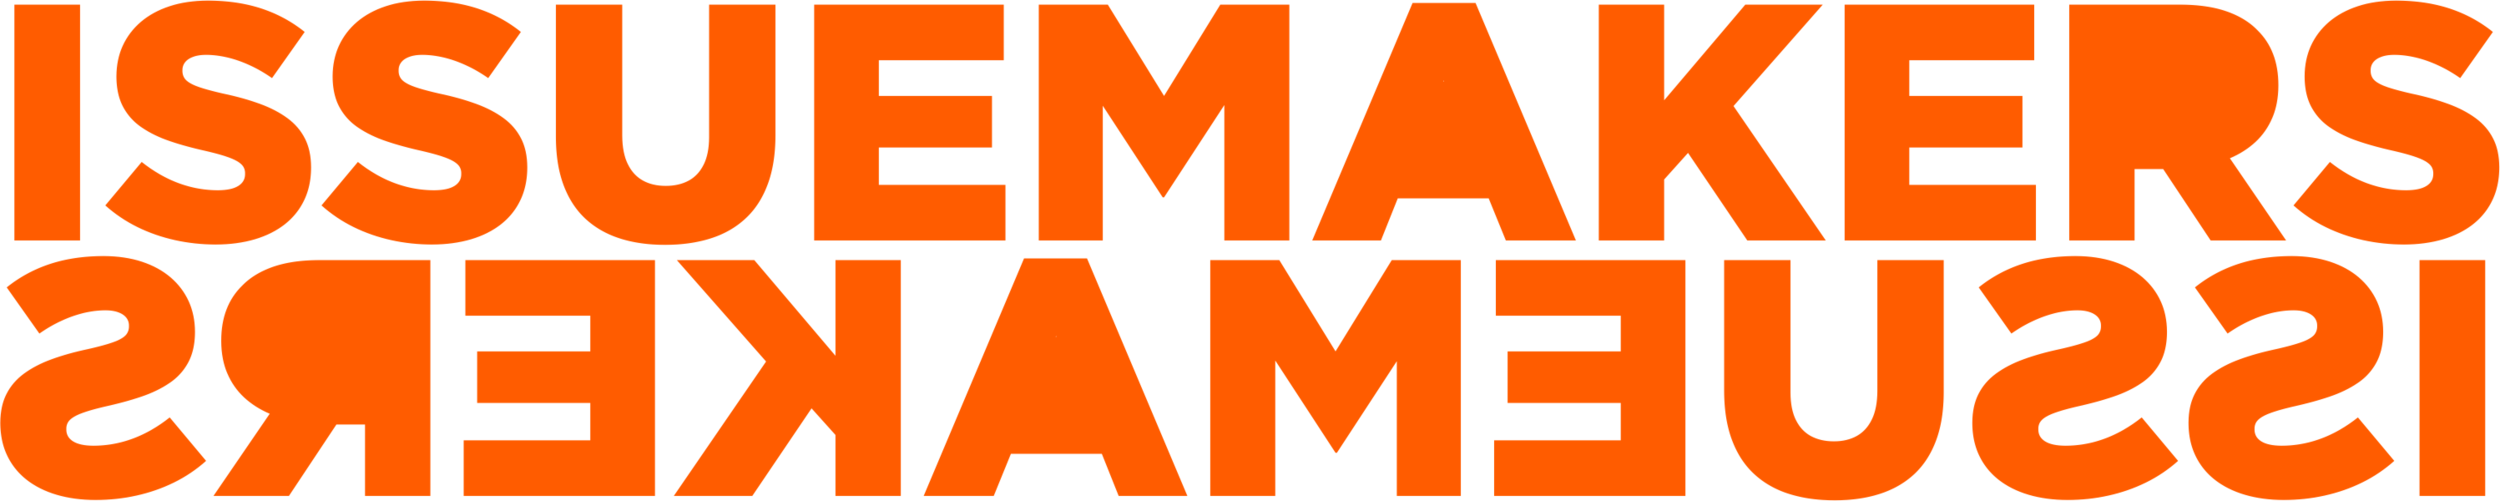 Issuemakers-Logo.png